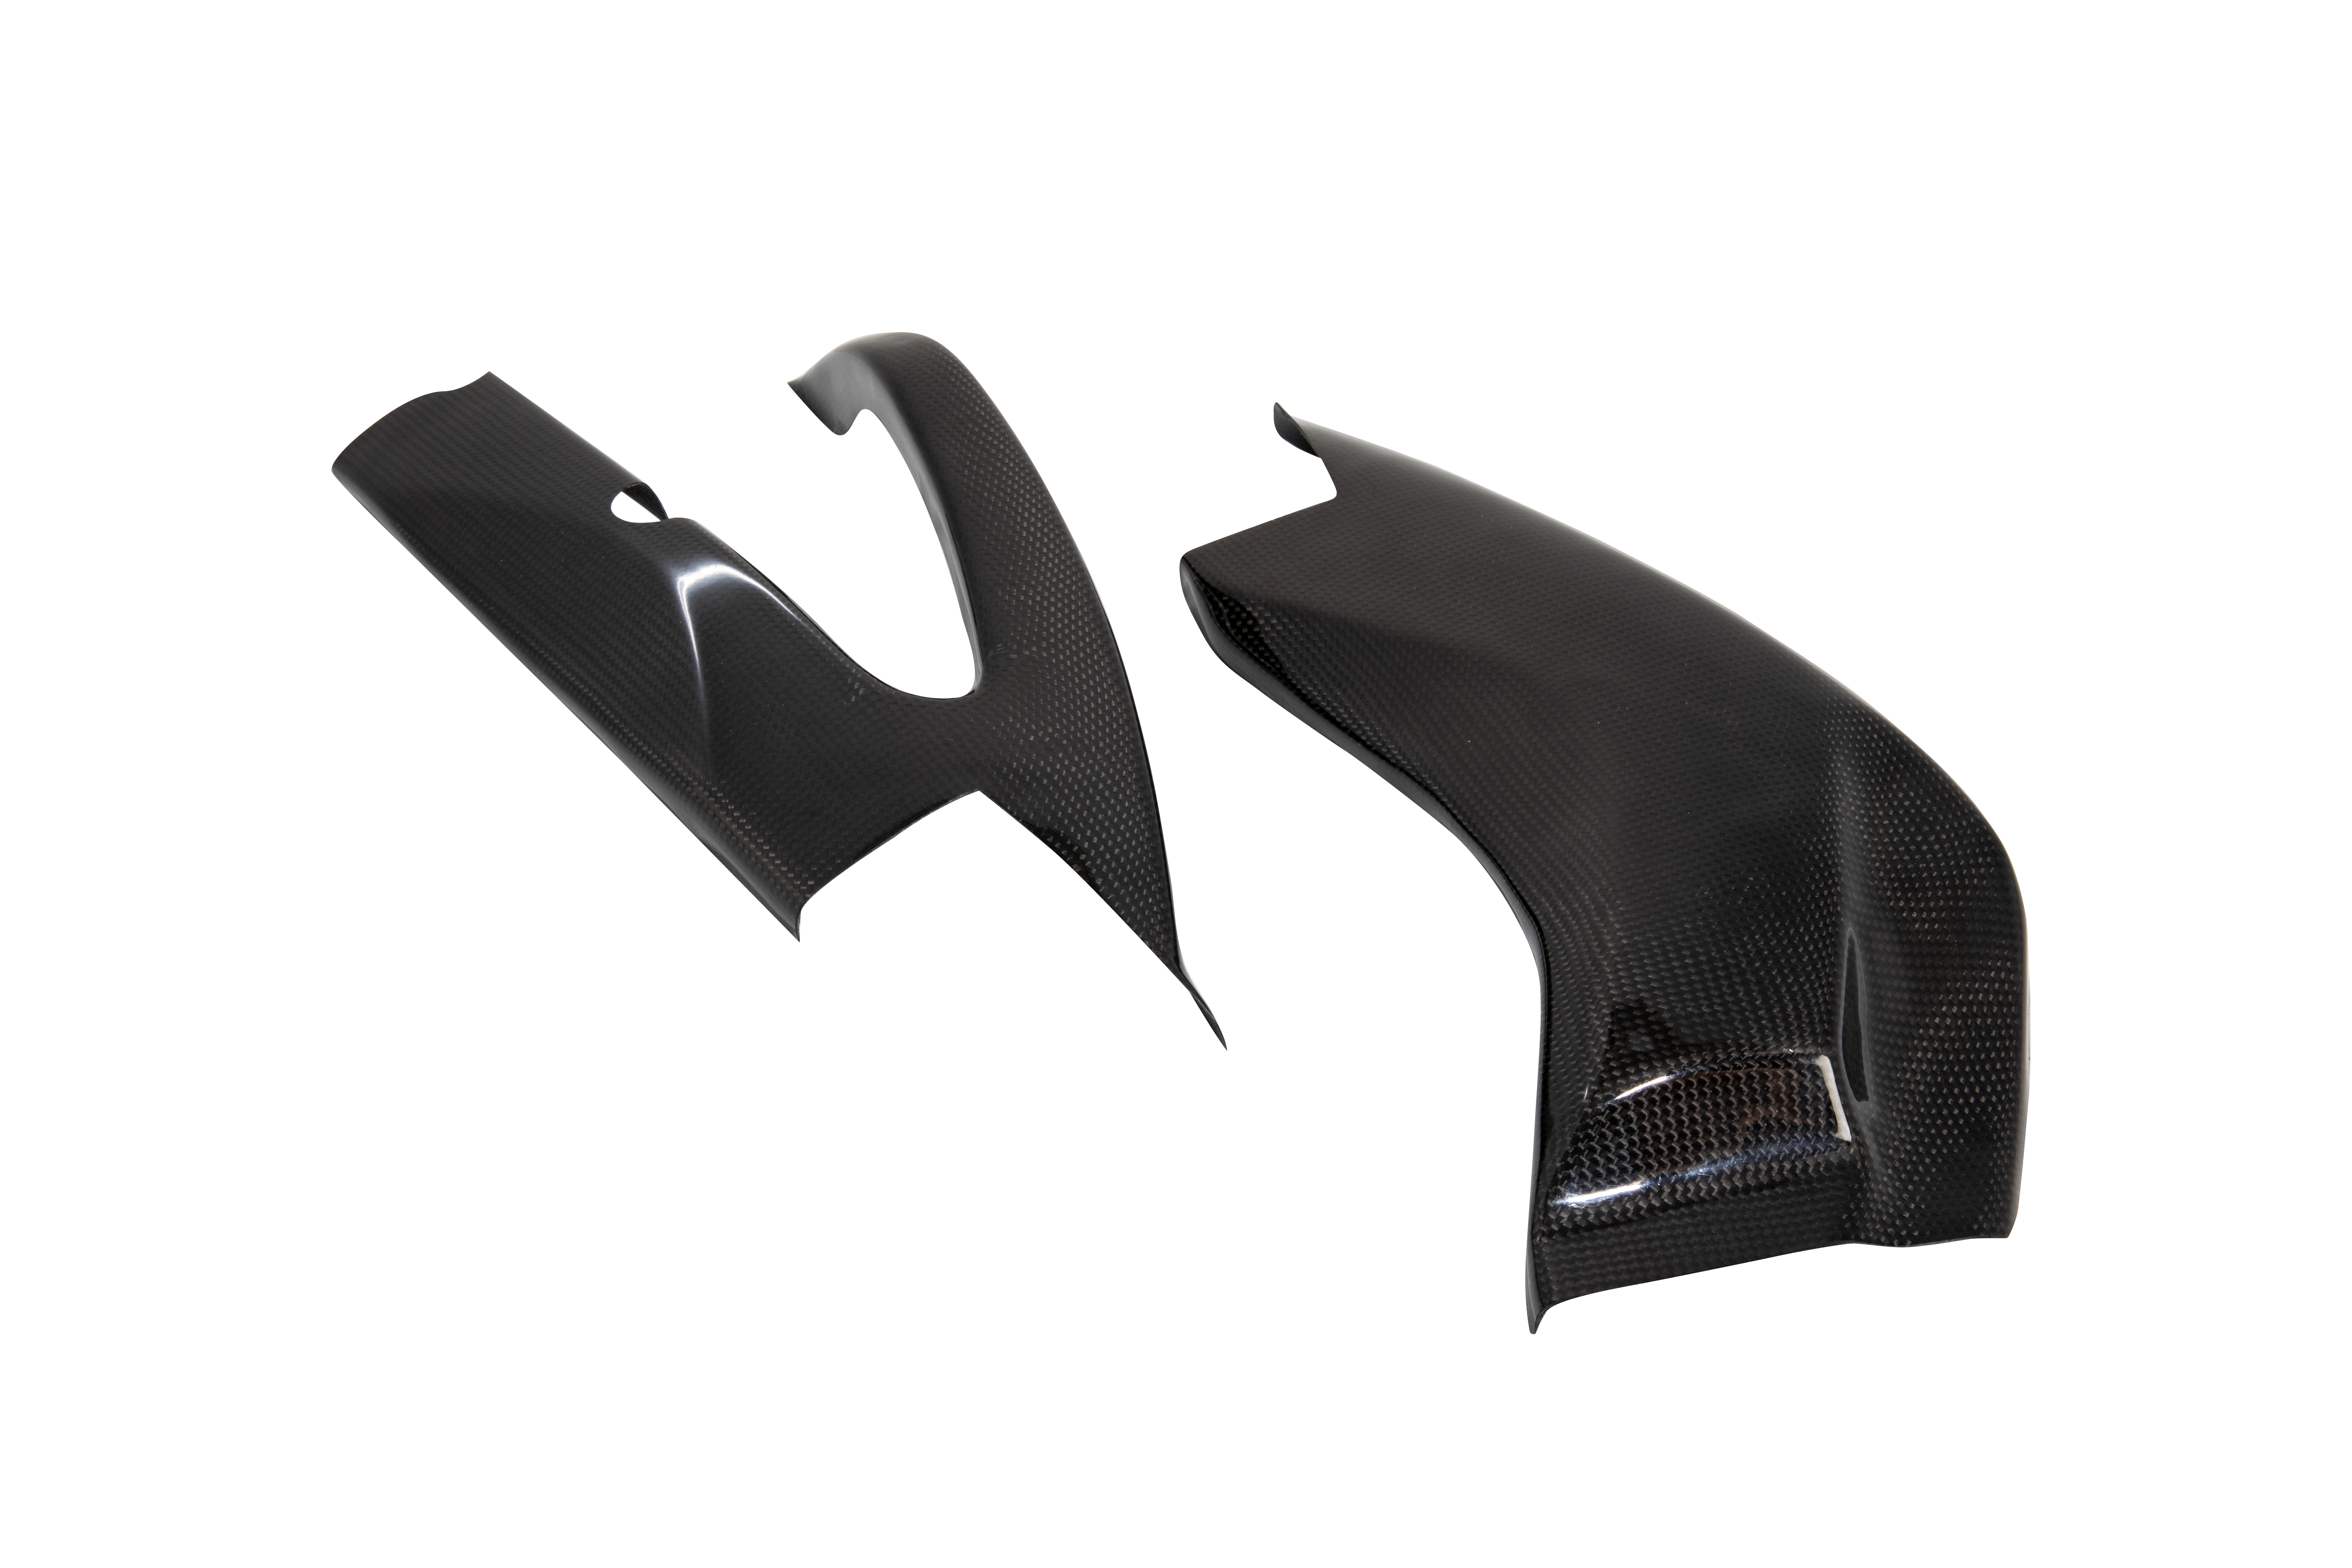 ARM PROTECTIONS SUZUKI GSXR 1000 (09-16)